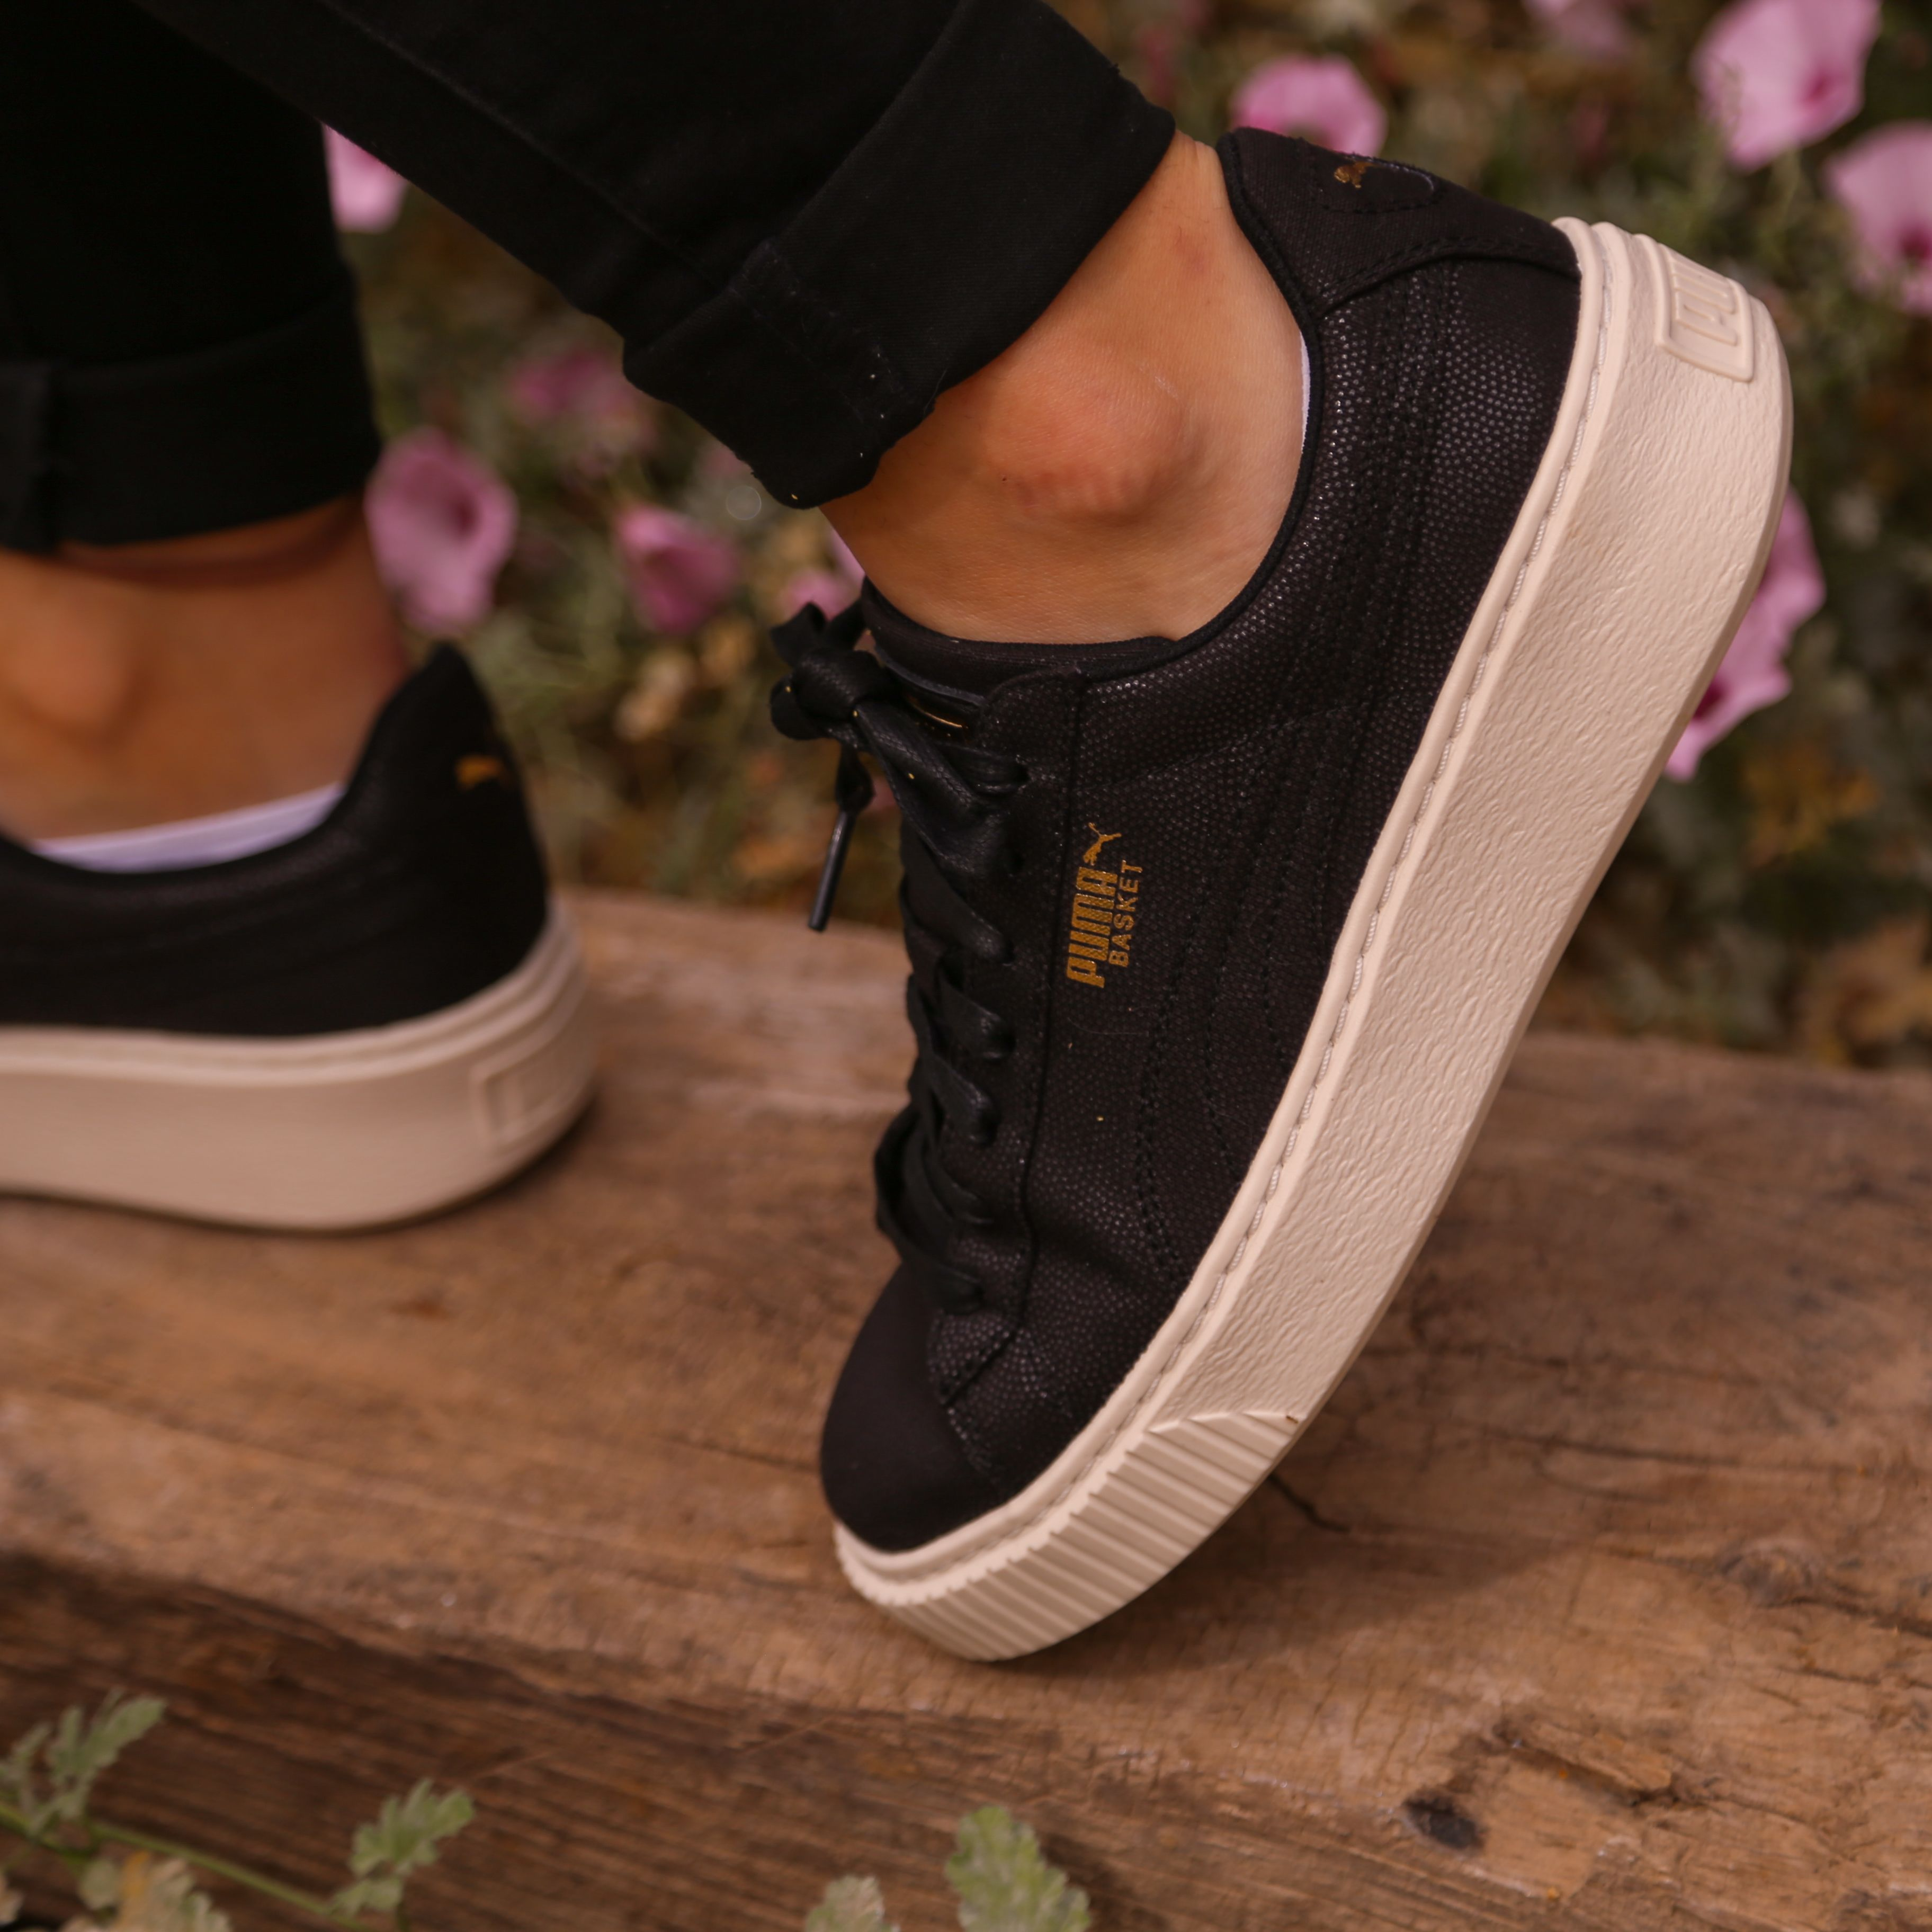 sale retailer 966ee b7b6a Discover ideas about Rihanna Fenty Puma Creepers